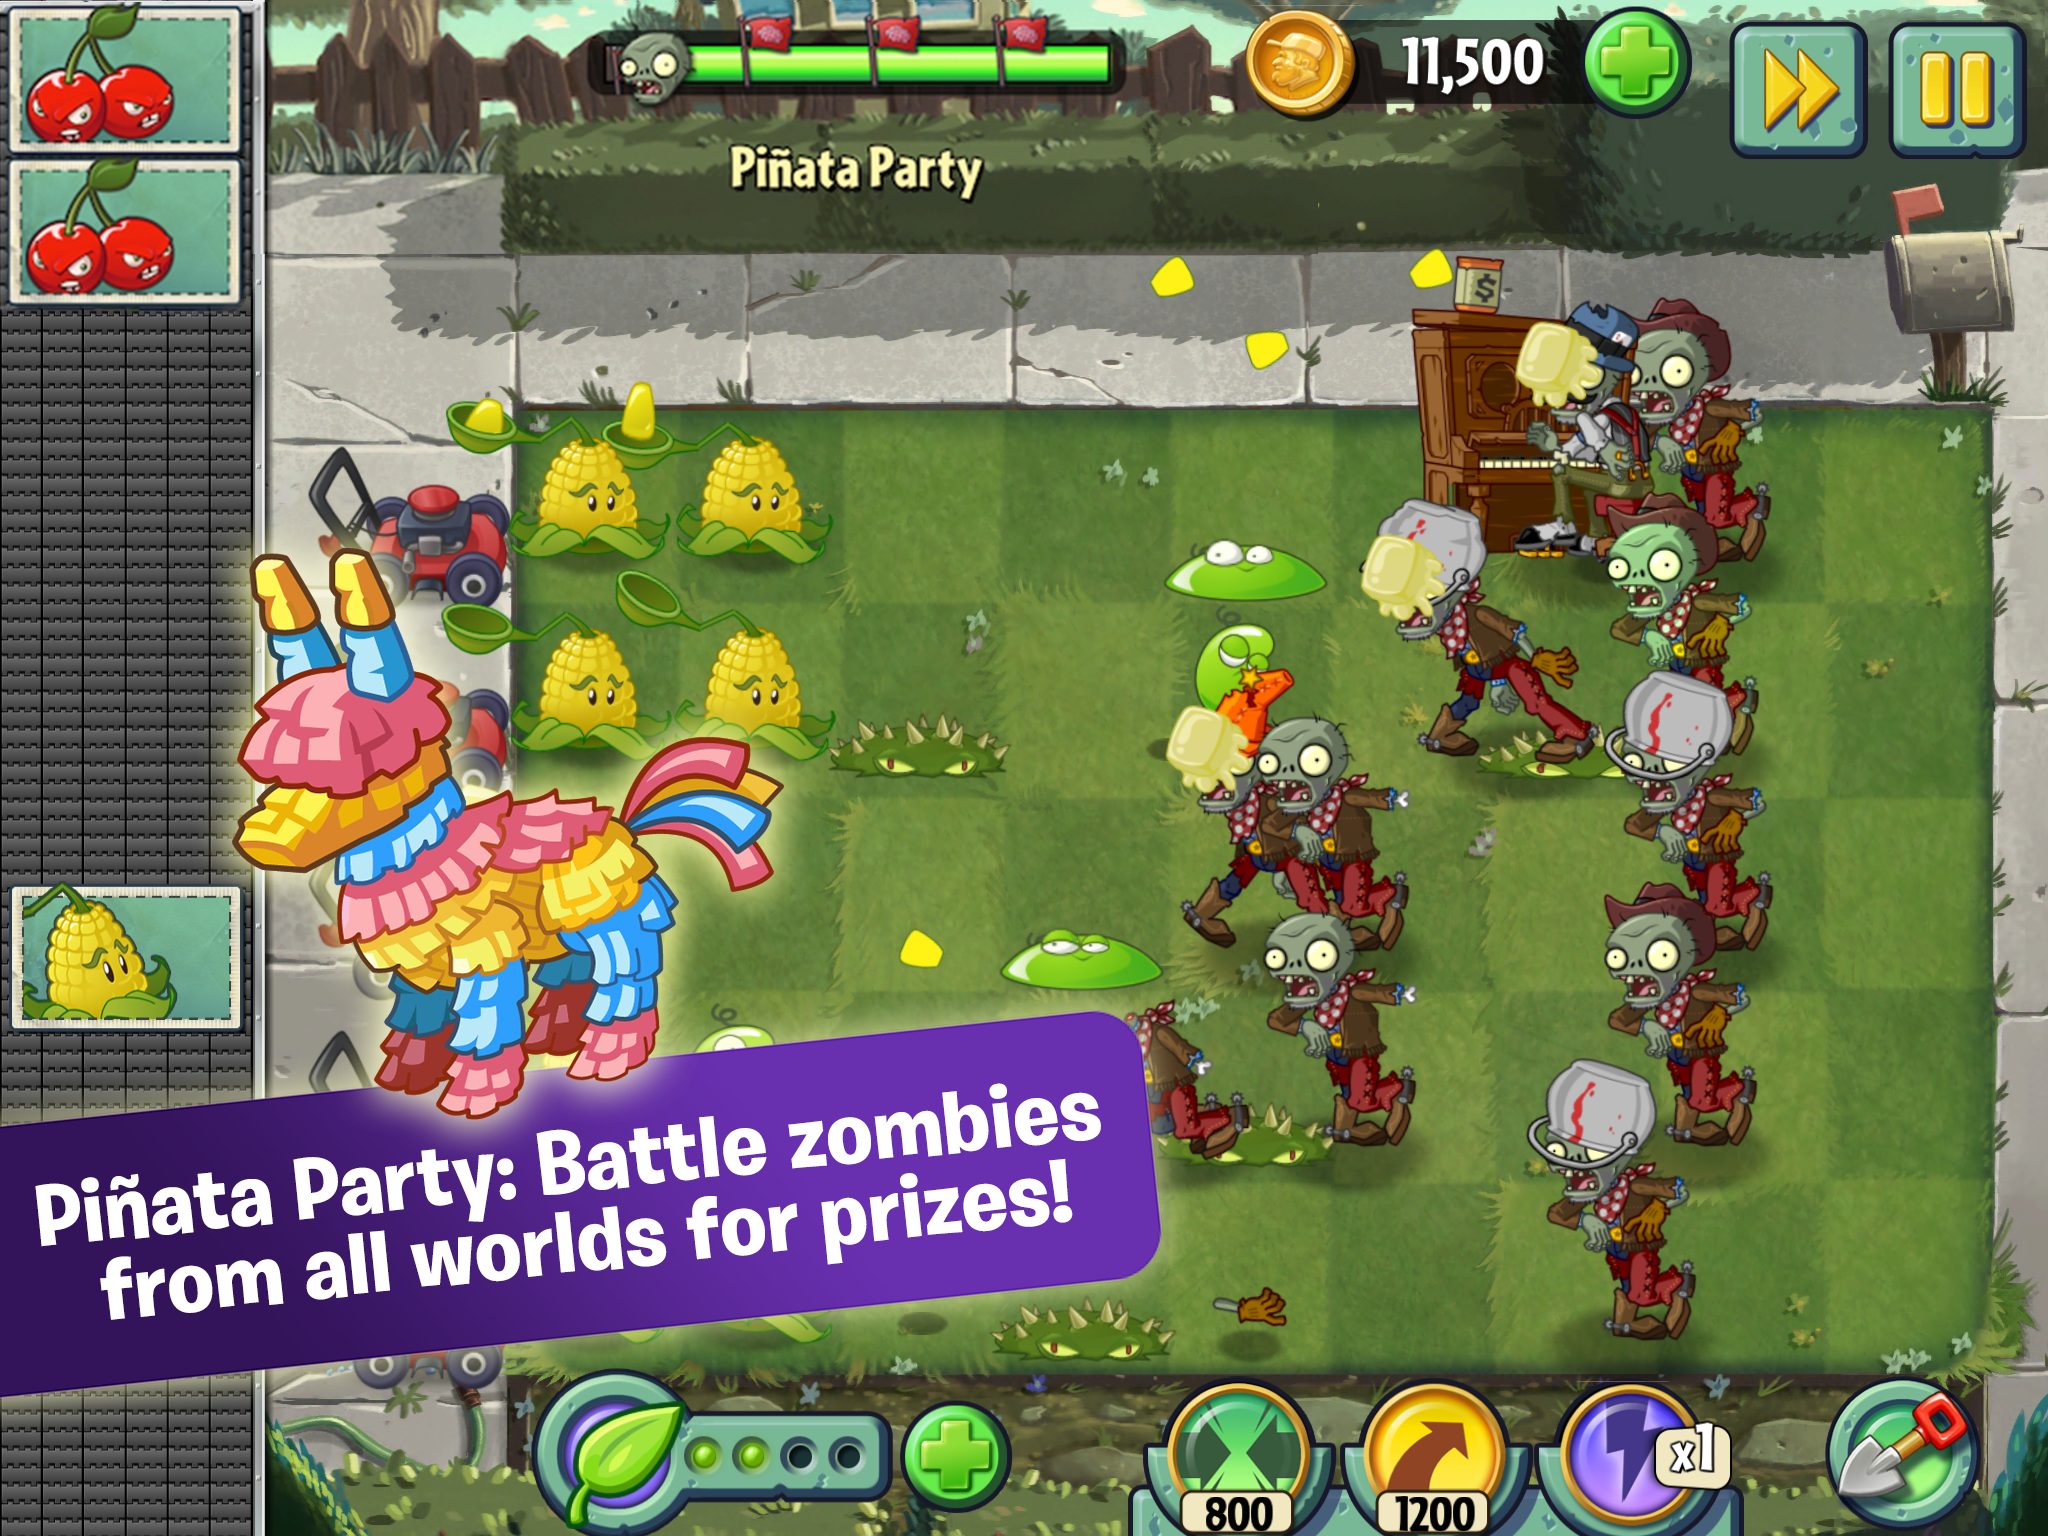 Popcap Games Home Of The World S Best Free Online Games Popcap Games Free Online Games Online Games